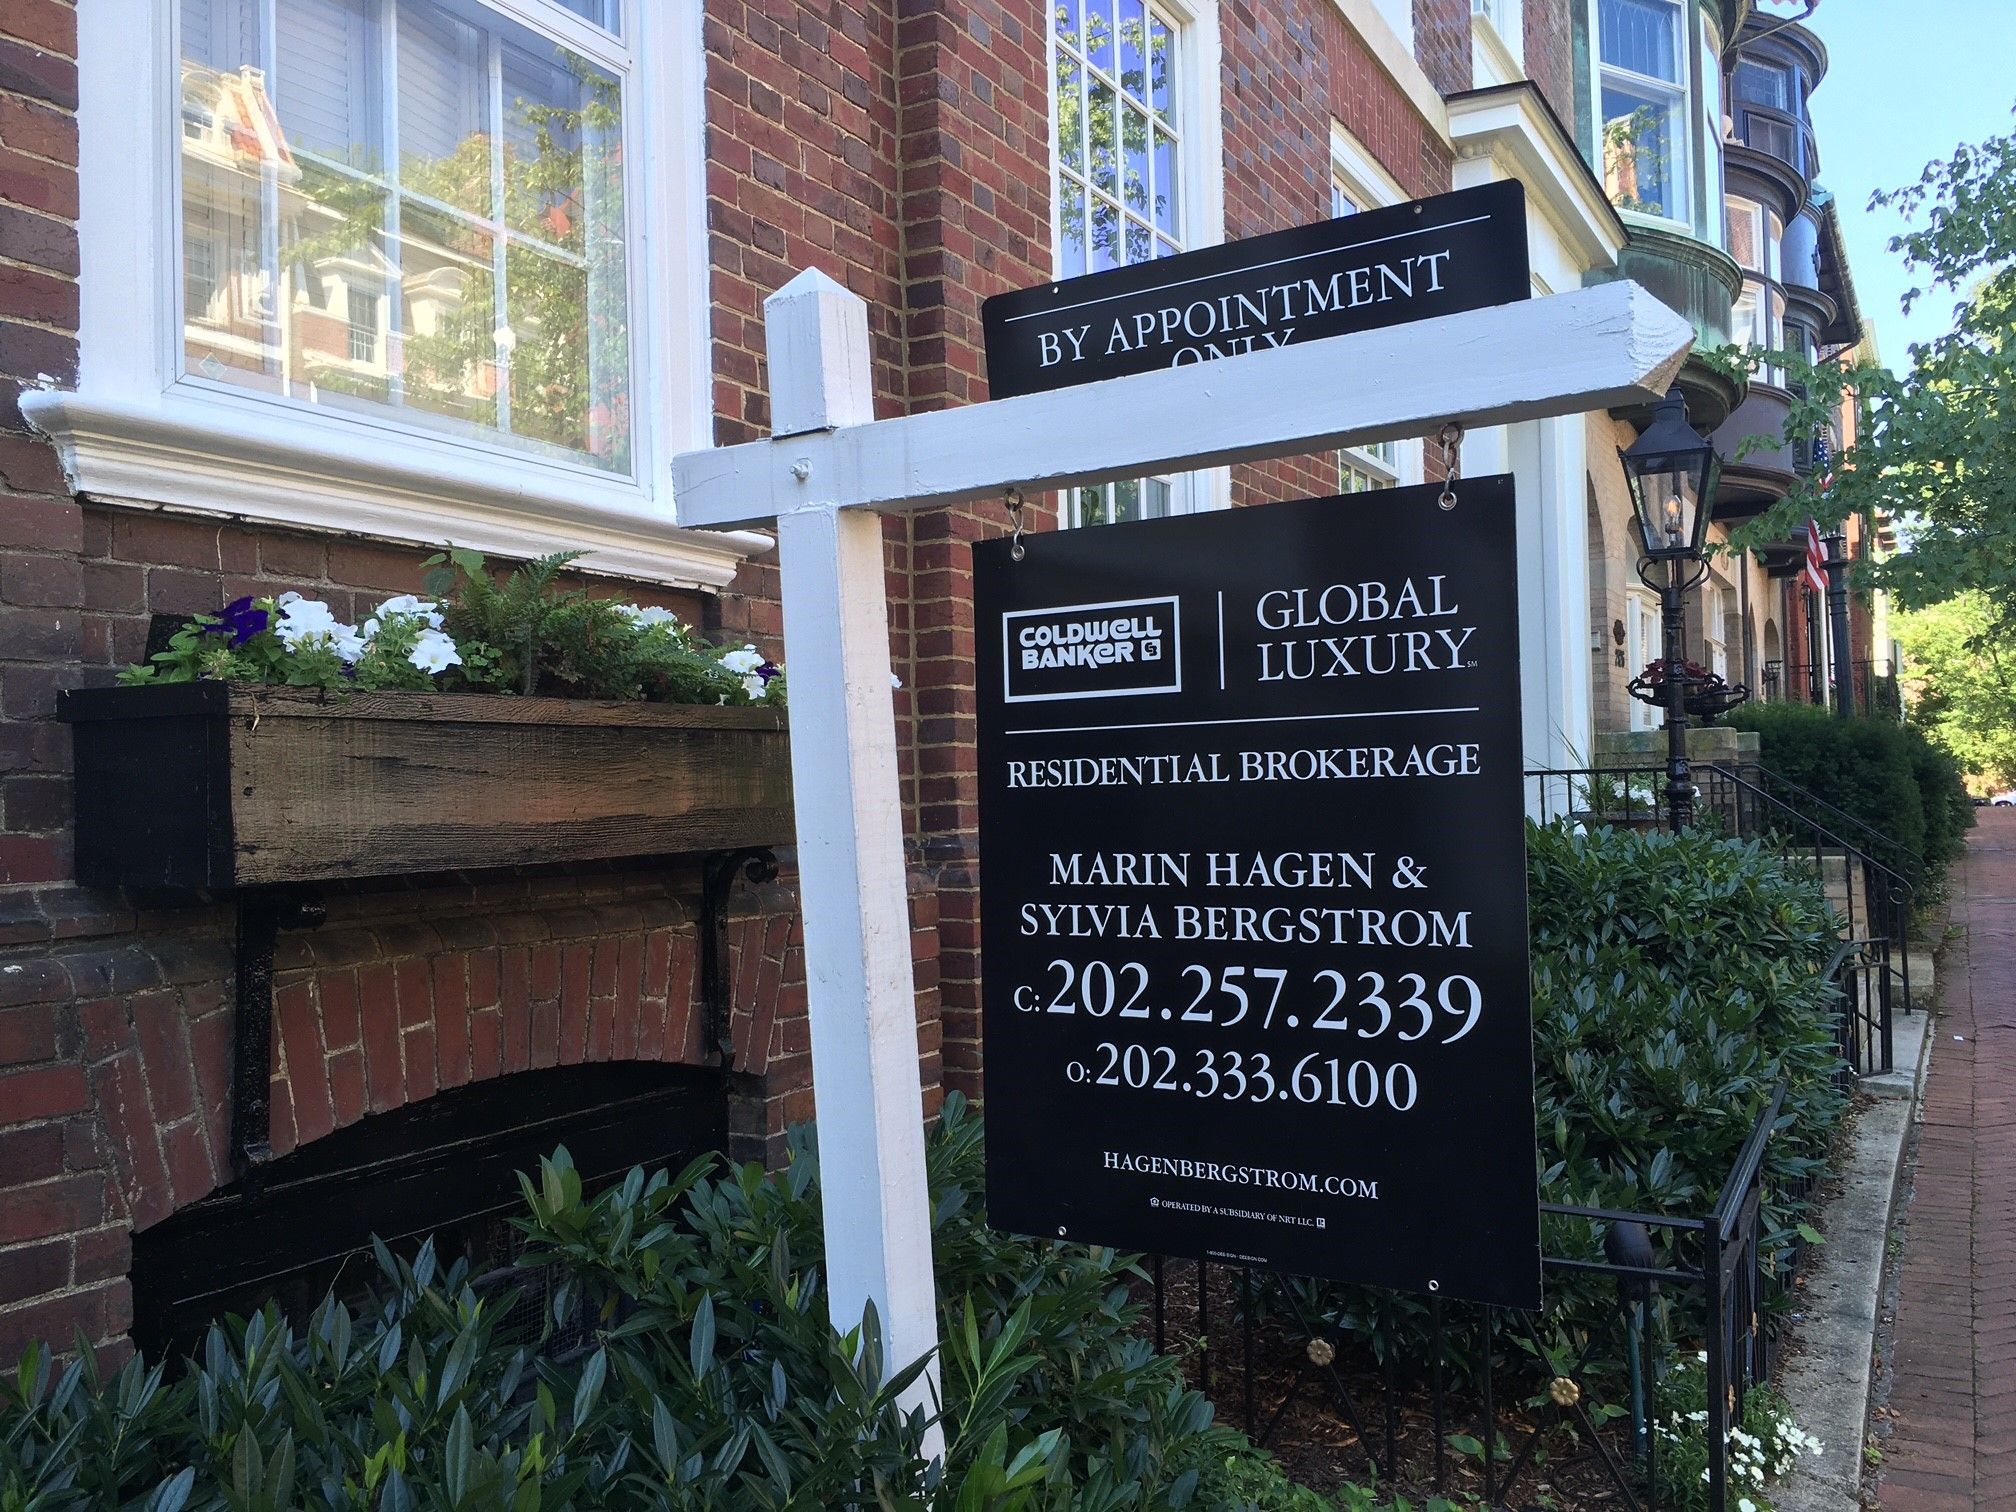 DC-area home prices hit record high, listings hit 6-year low